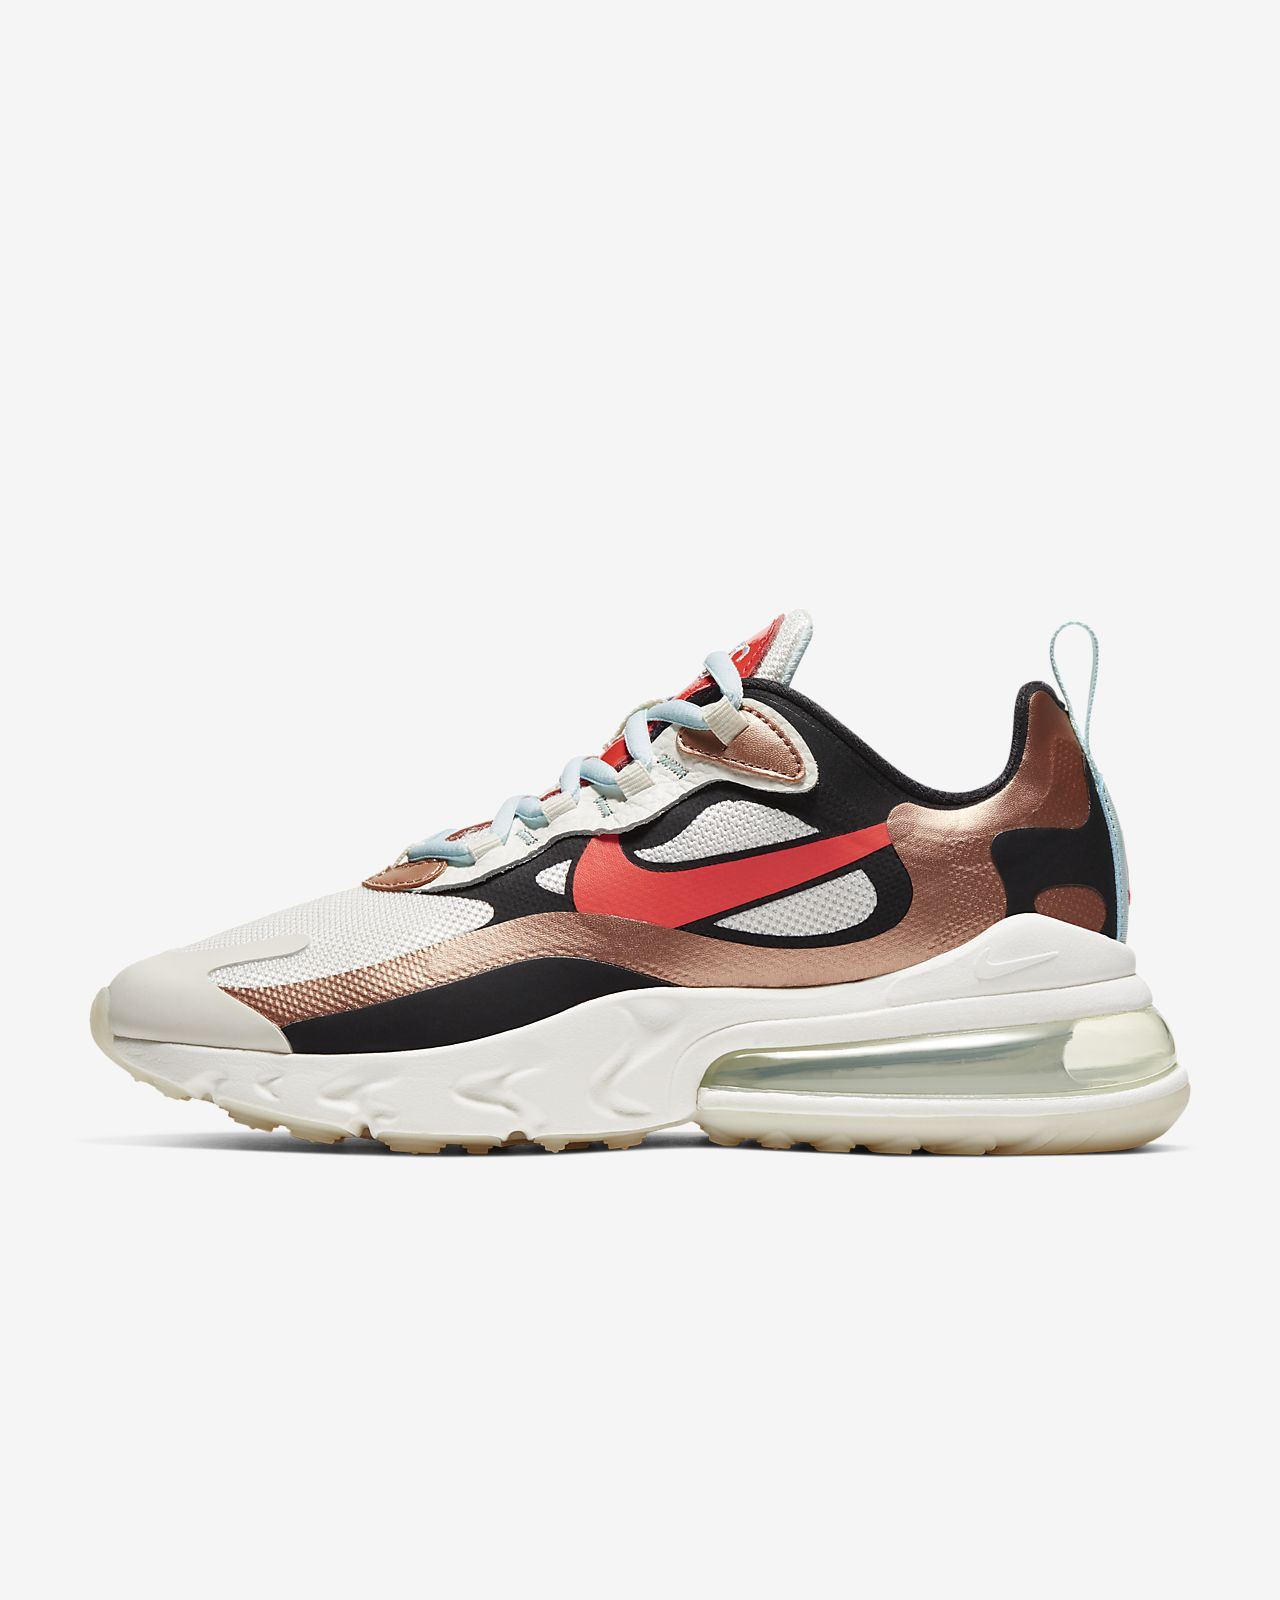 Available Now Nike Air Max 270 React